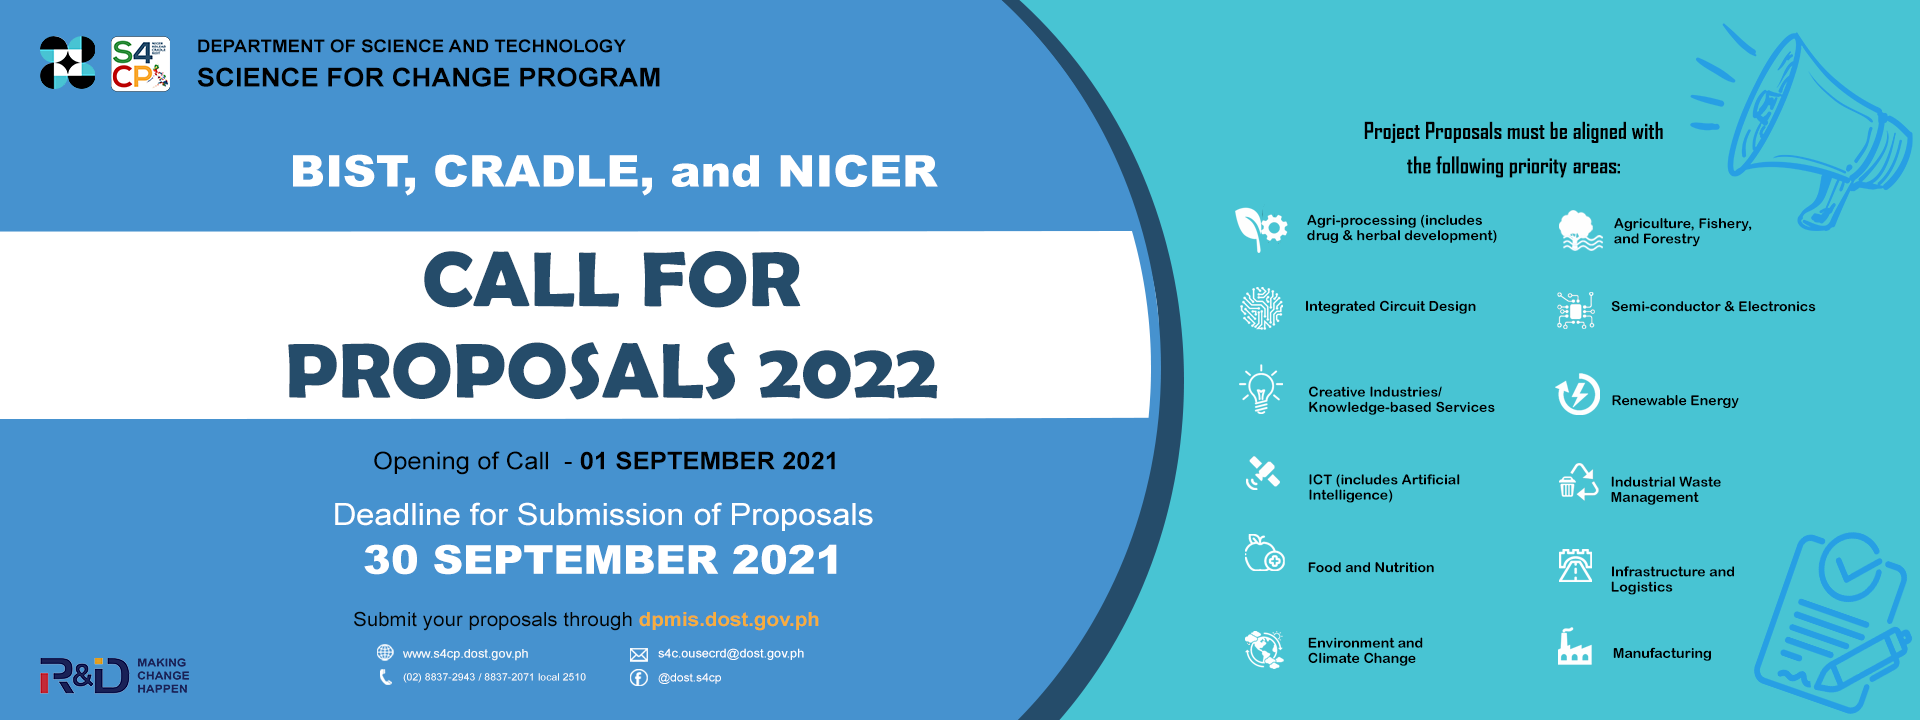 CALL FOR PROPOSALS 2022